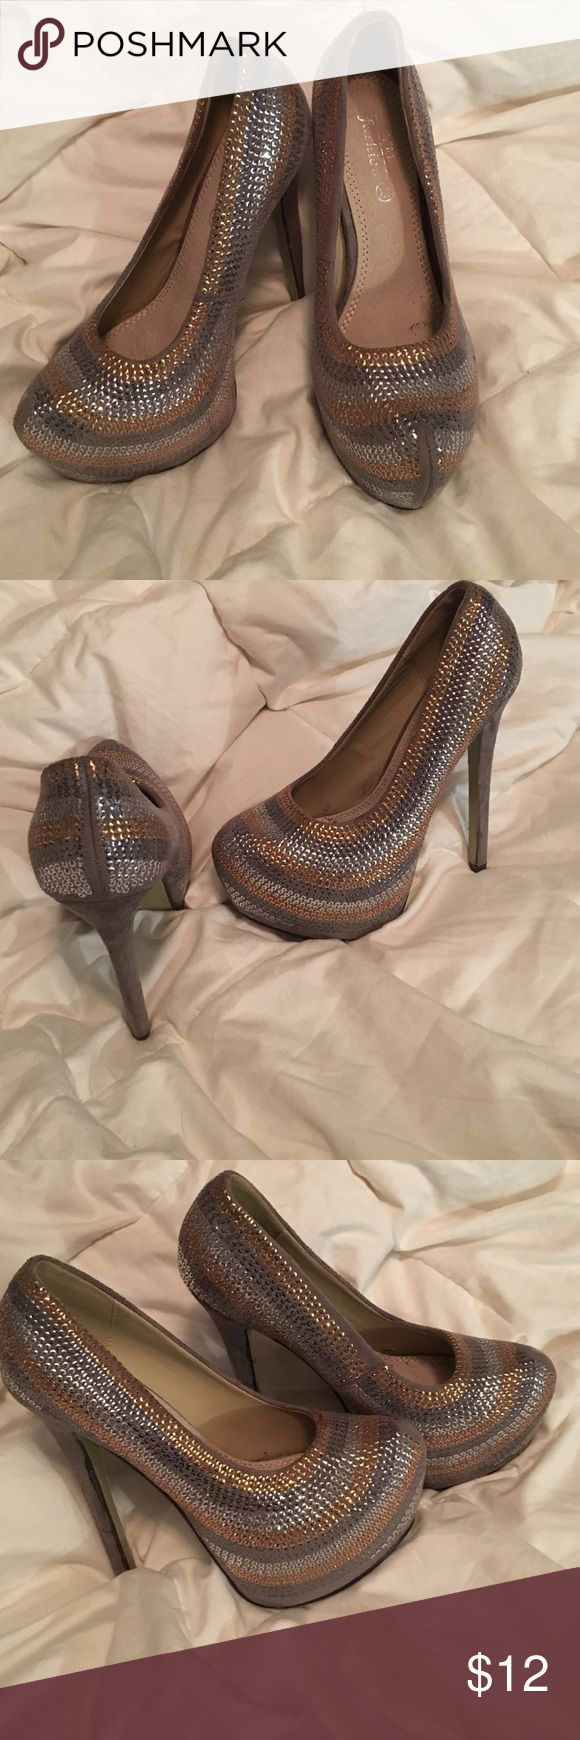 "Grey high heels Grey heels with gold, silver and chrome accents. Heel about 4"" HEM Shoes Heels"